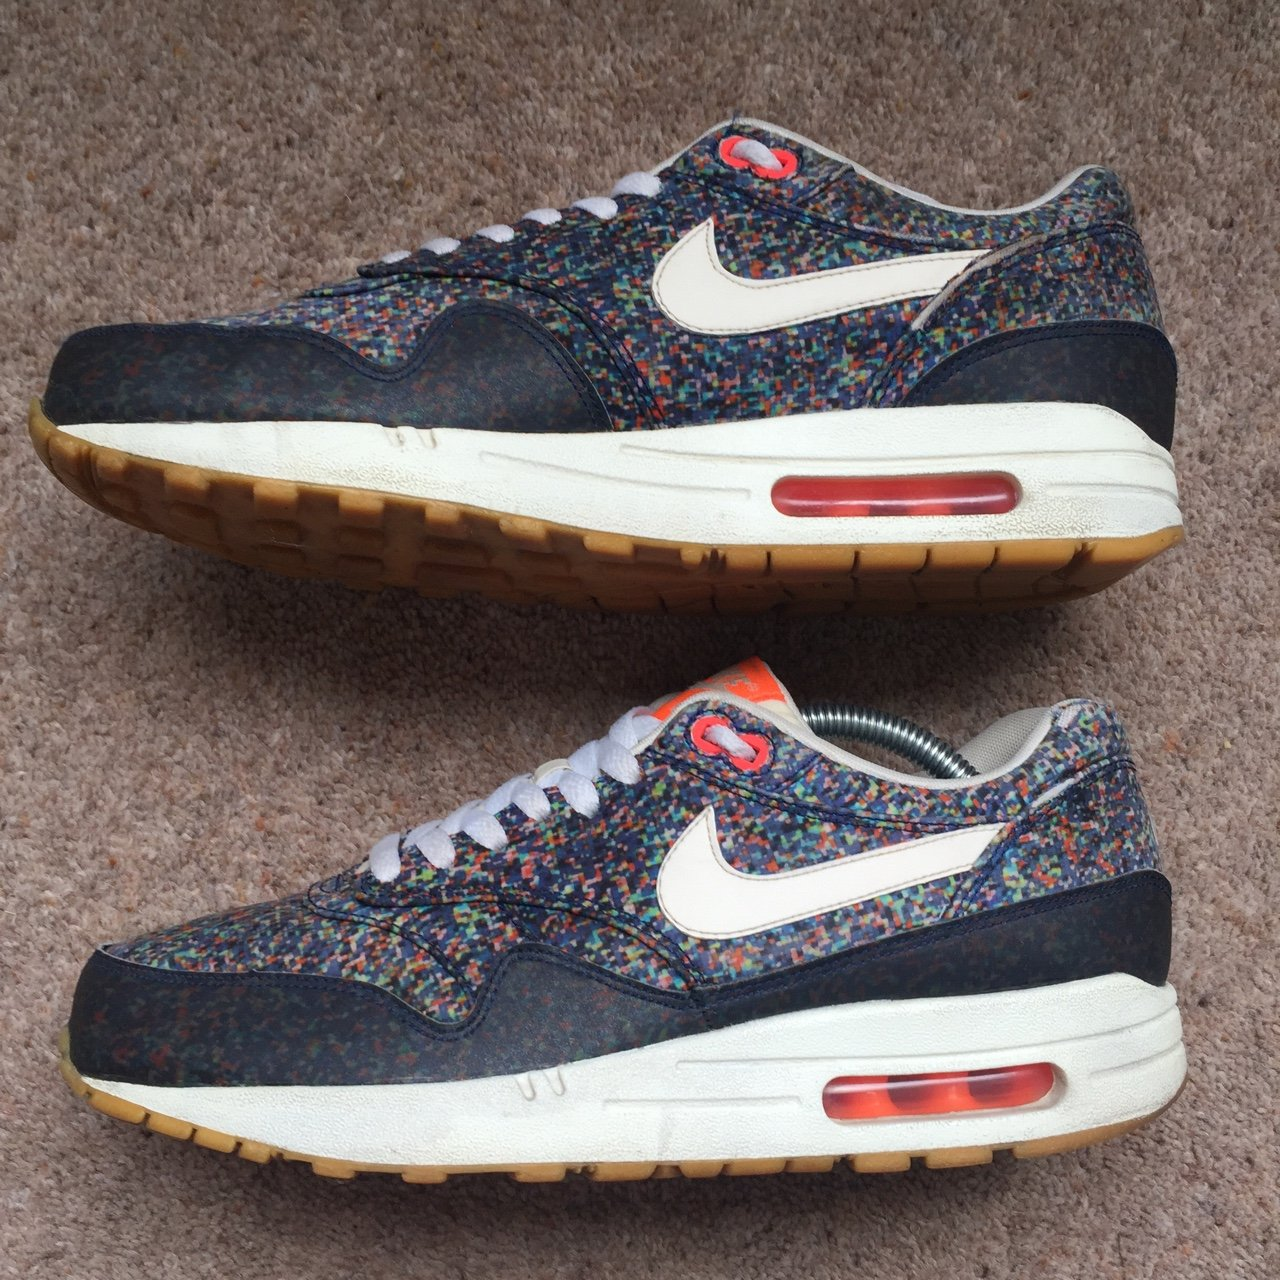 promo code 20b79 e11f2 2013 Nike X Liberty of London Air Max 1 Pixel Pack UK 8 7 10 - Depop